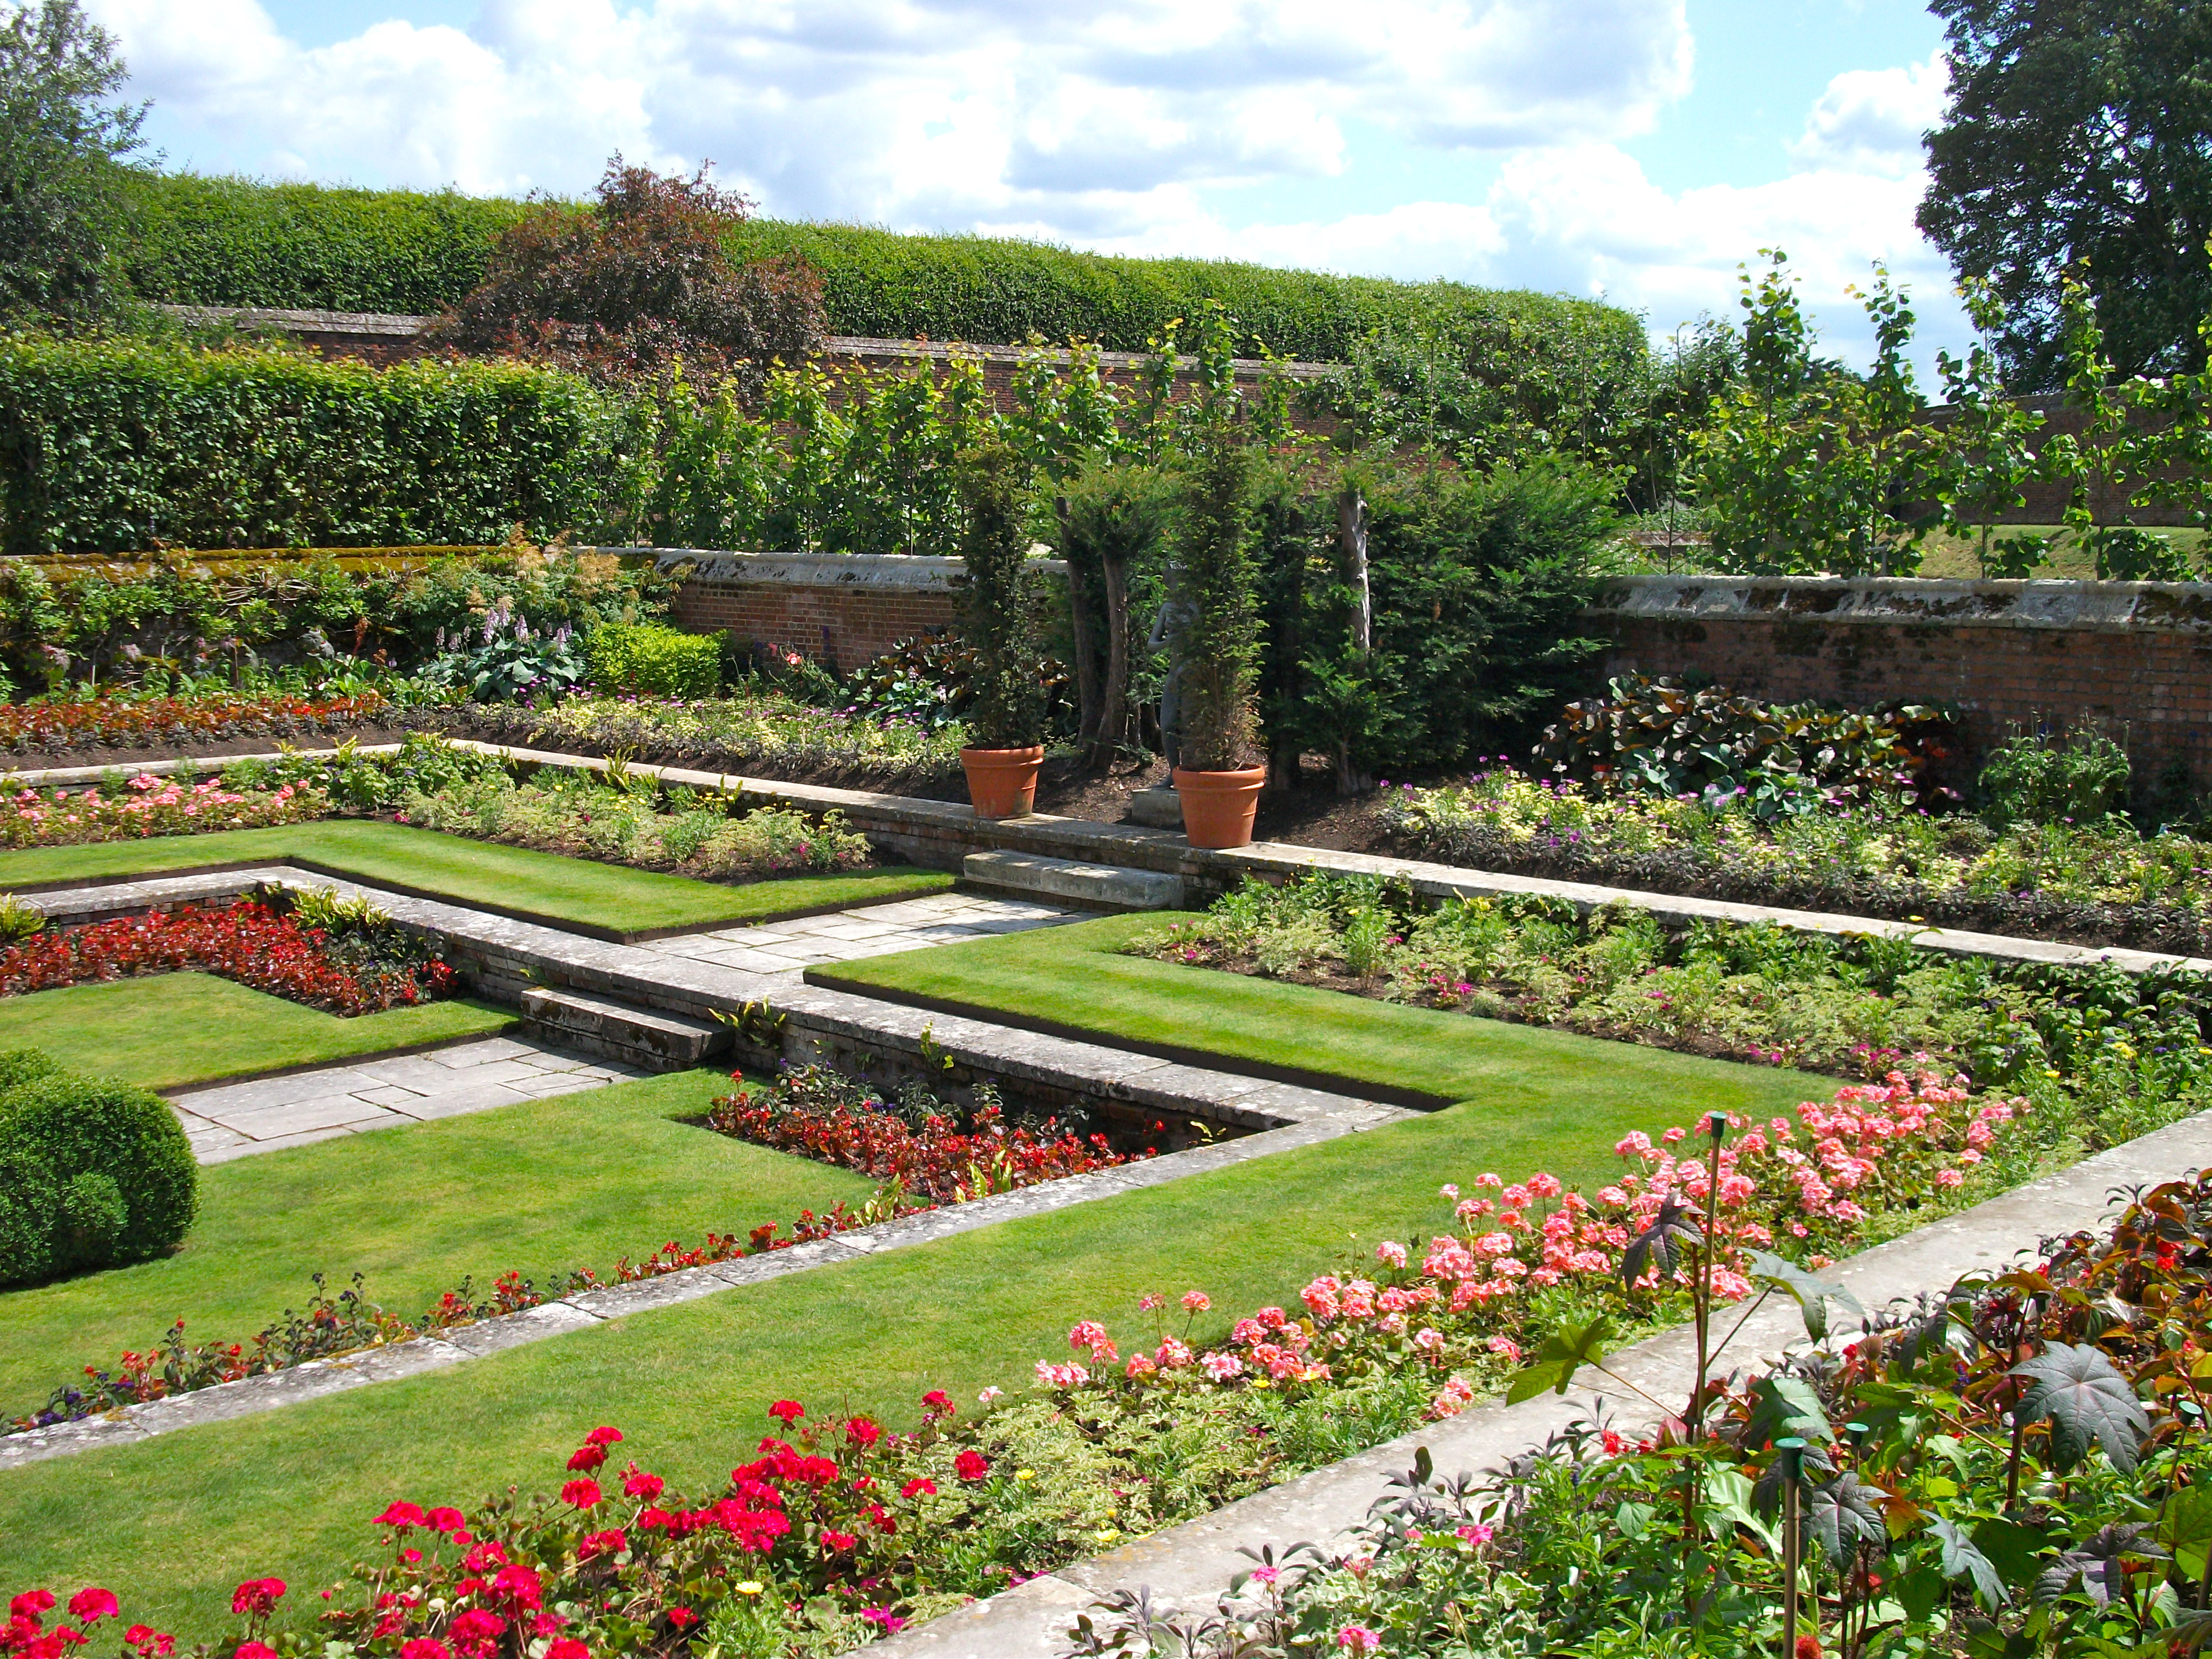 Roses In Garden: Open To The Public In 19th Century